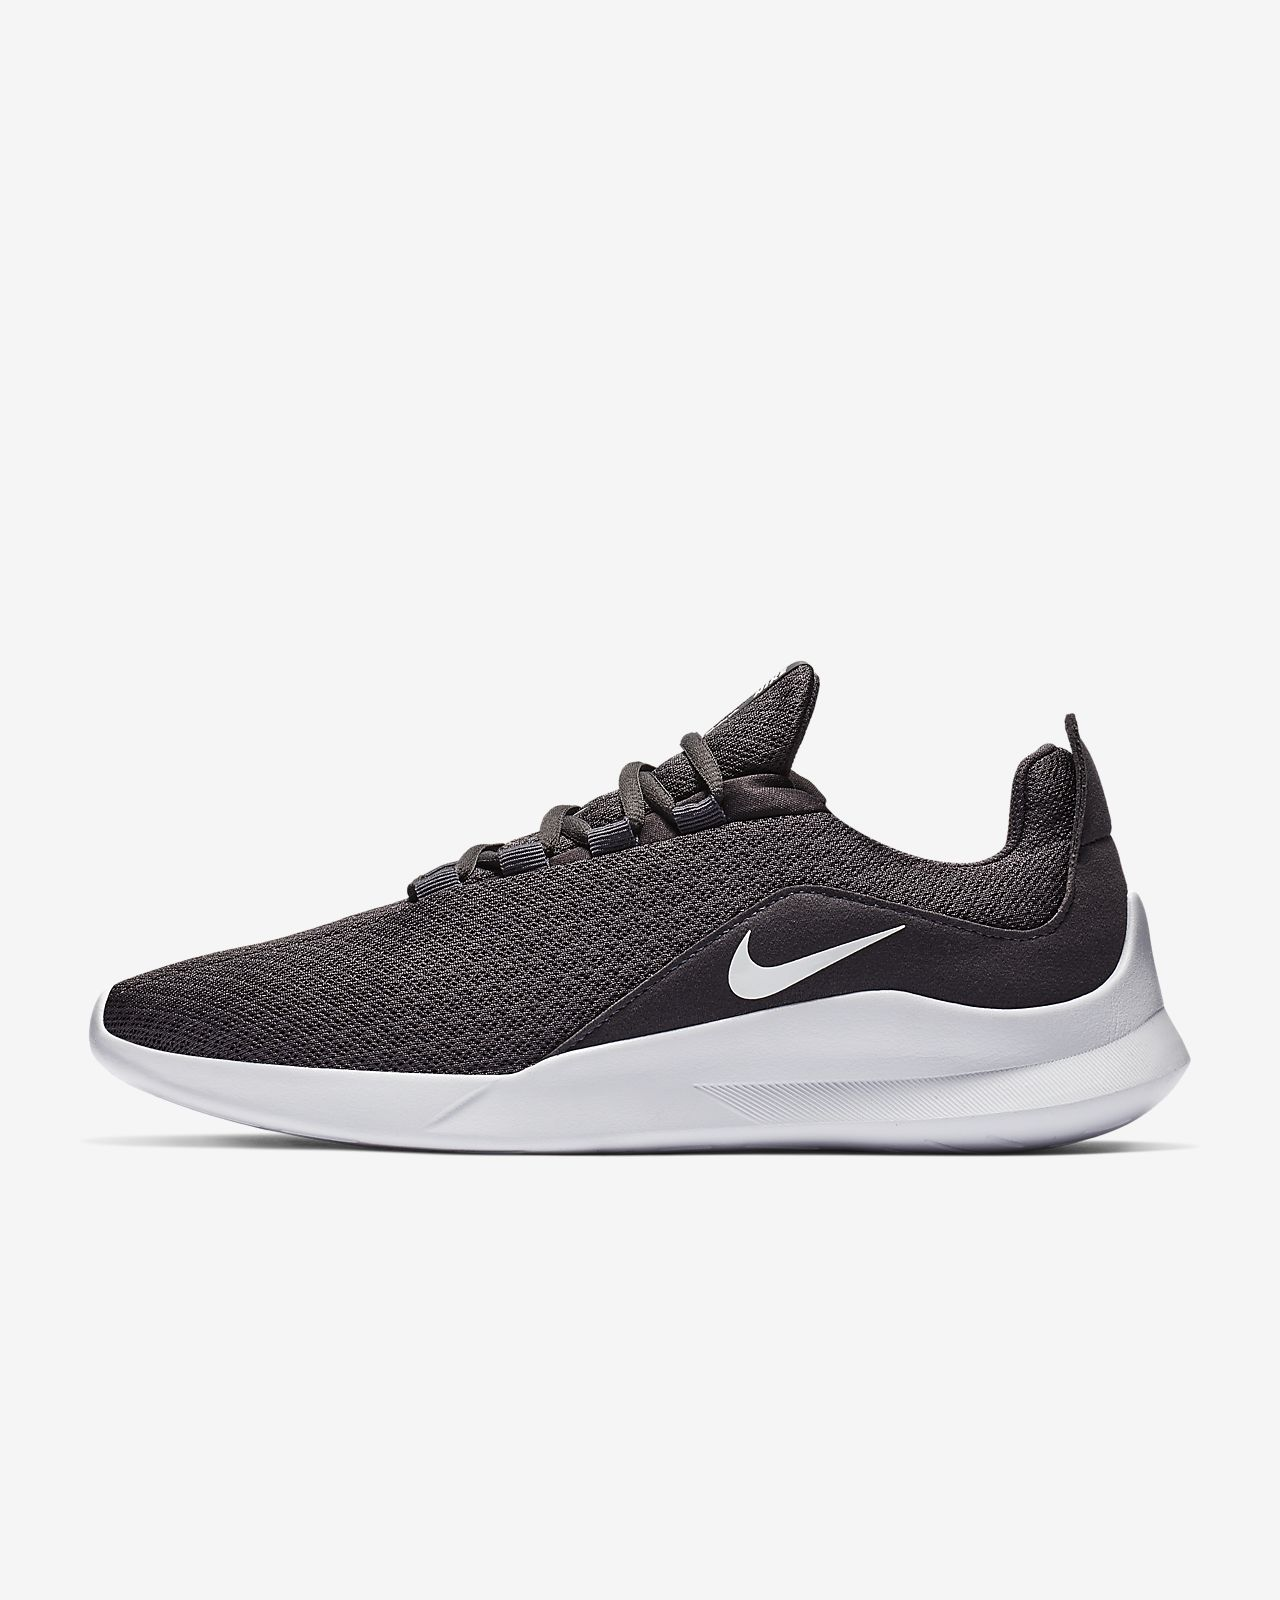 968fc0ef50a5 Low Resolution Nike Viale Men s Shoe Nike Viale Men s Shoe